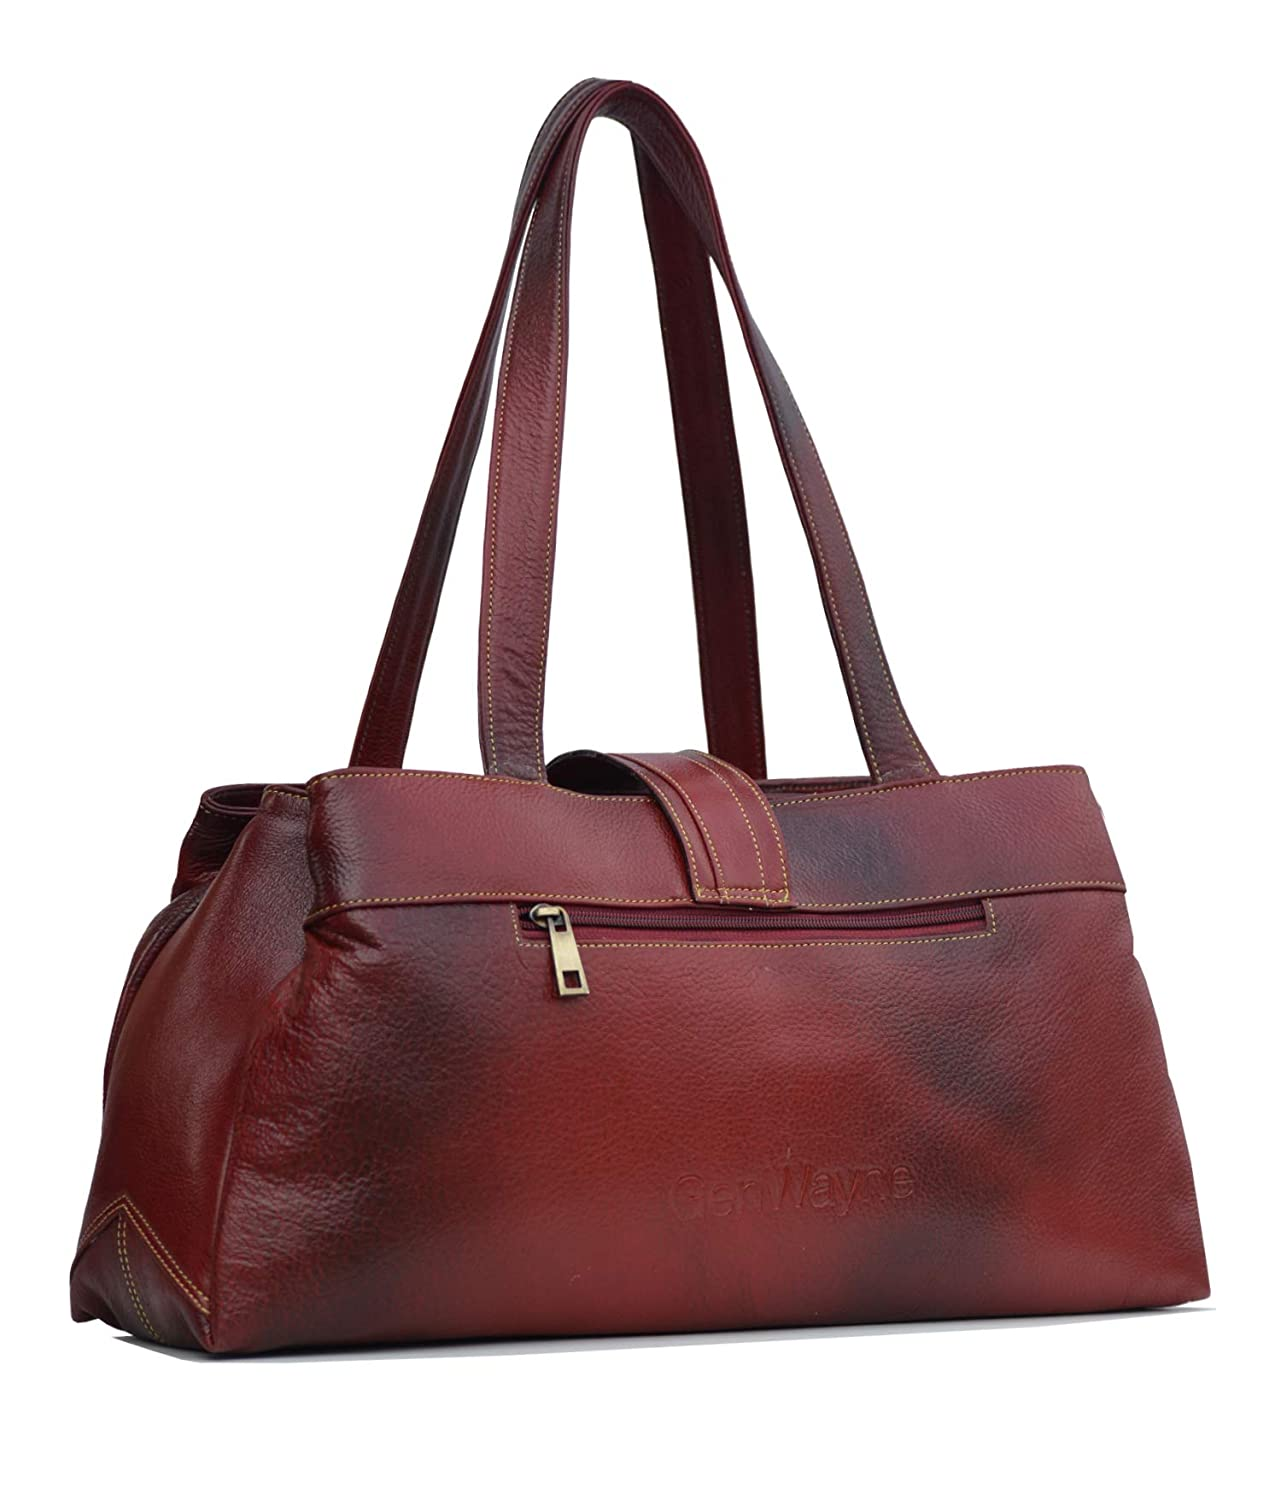 92d258945a GenWayne leather handbags for women cum shoulderbag (pure leather bag)  (Wine Red)  Amazon.in  Shoes   Handbags